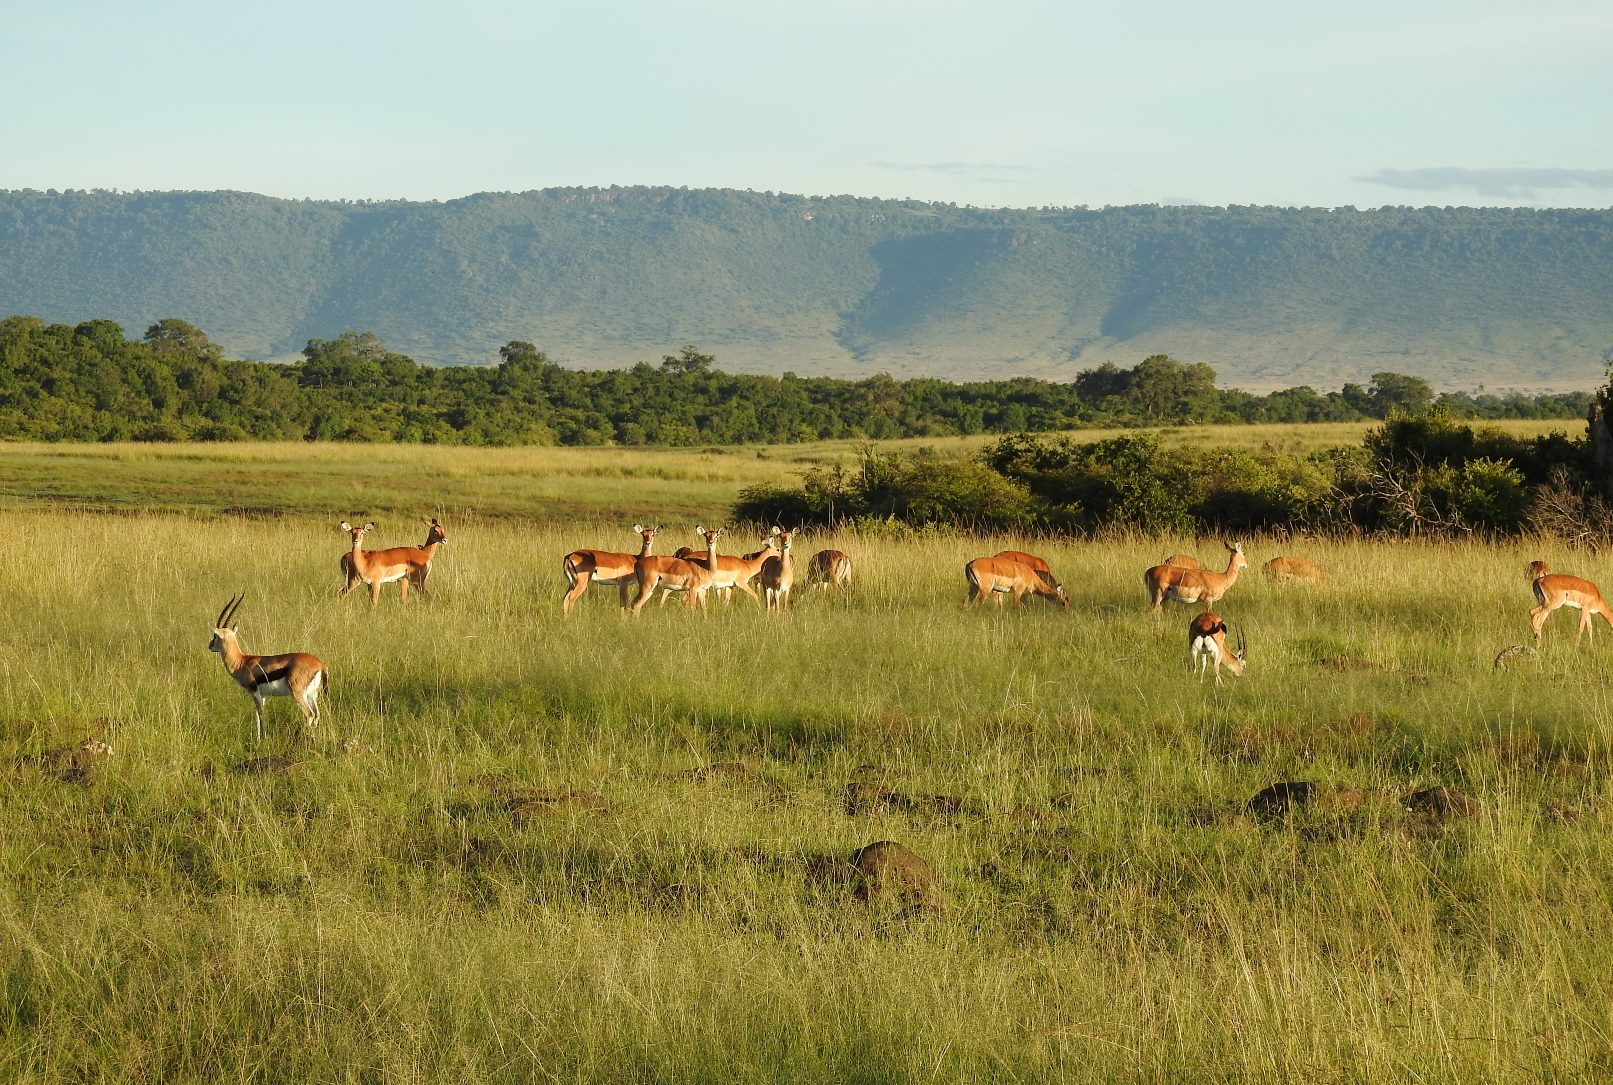 Impala graze in the Mara Triangle with the escarpment leading to Tanzania's Serengeti National Park in the background.